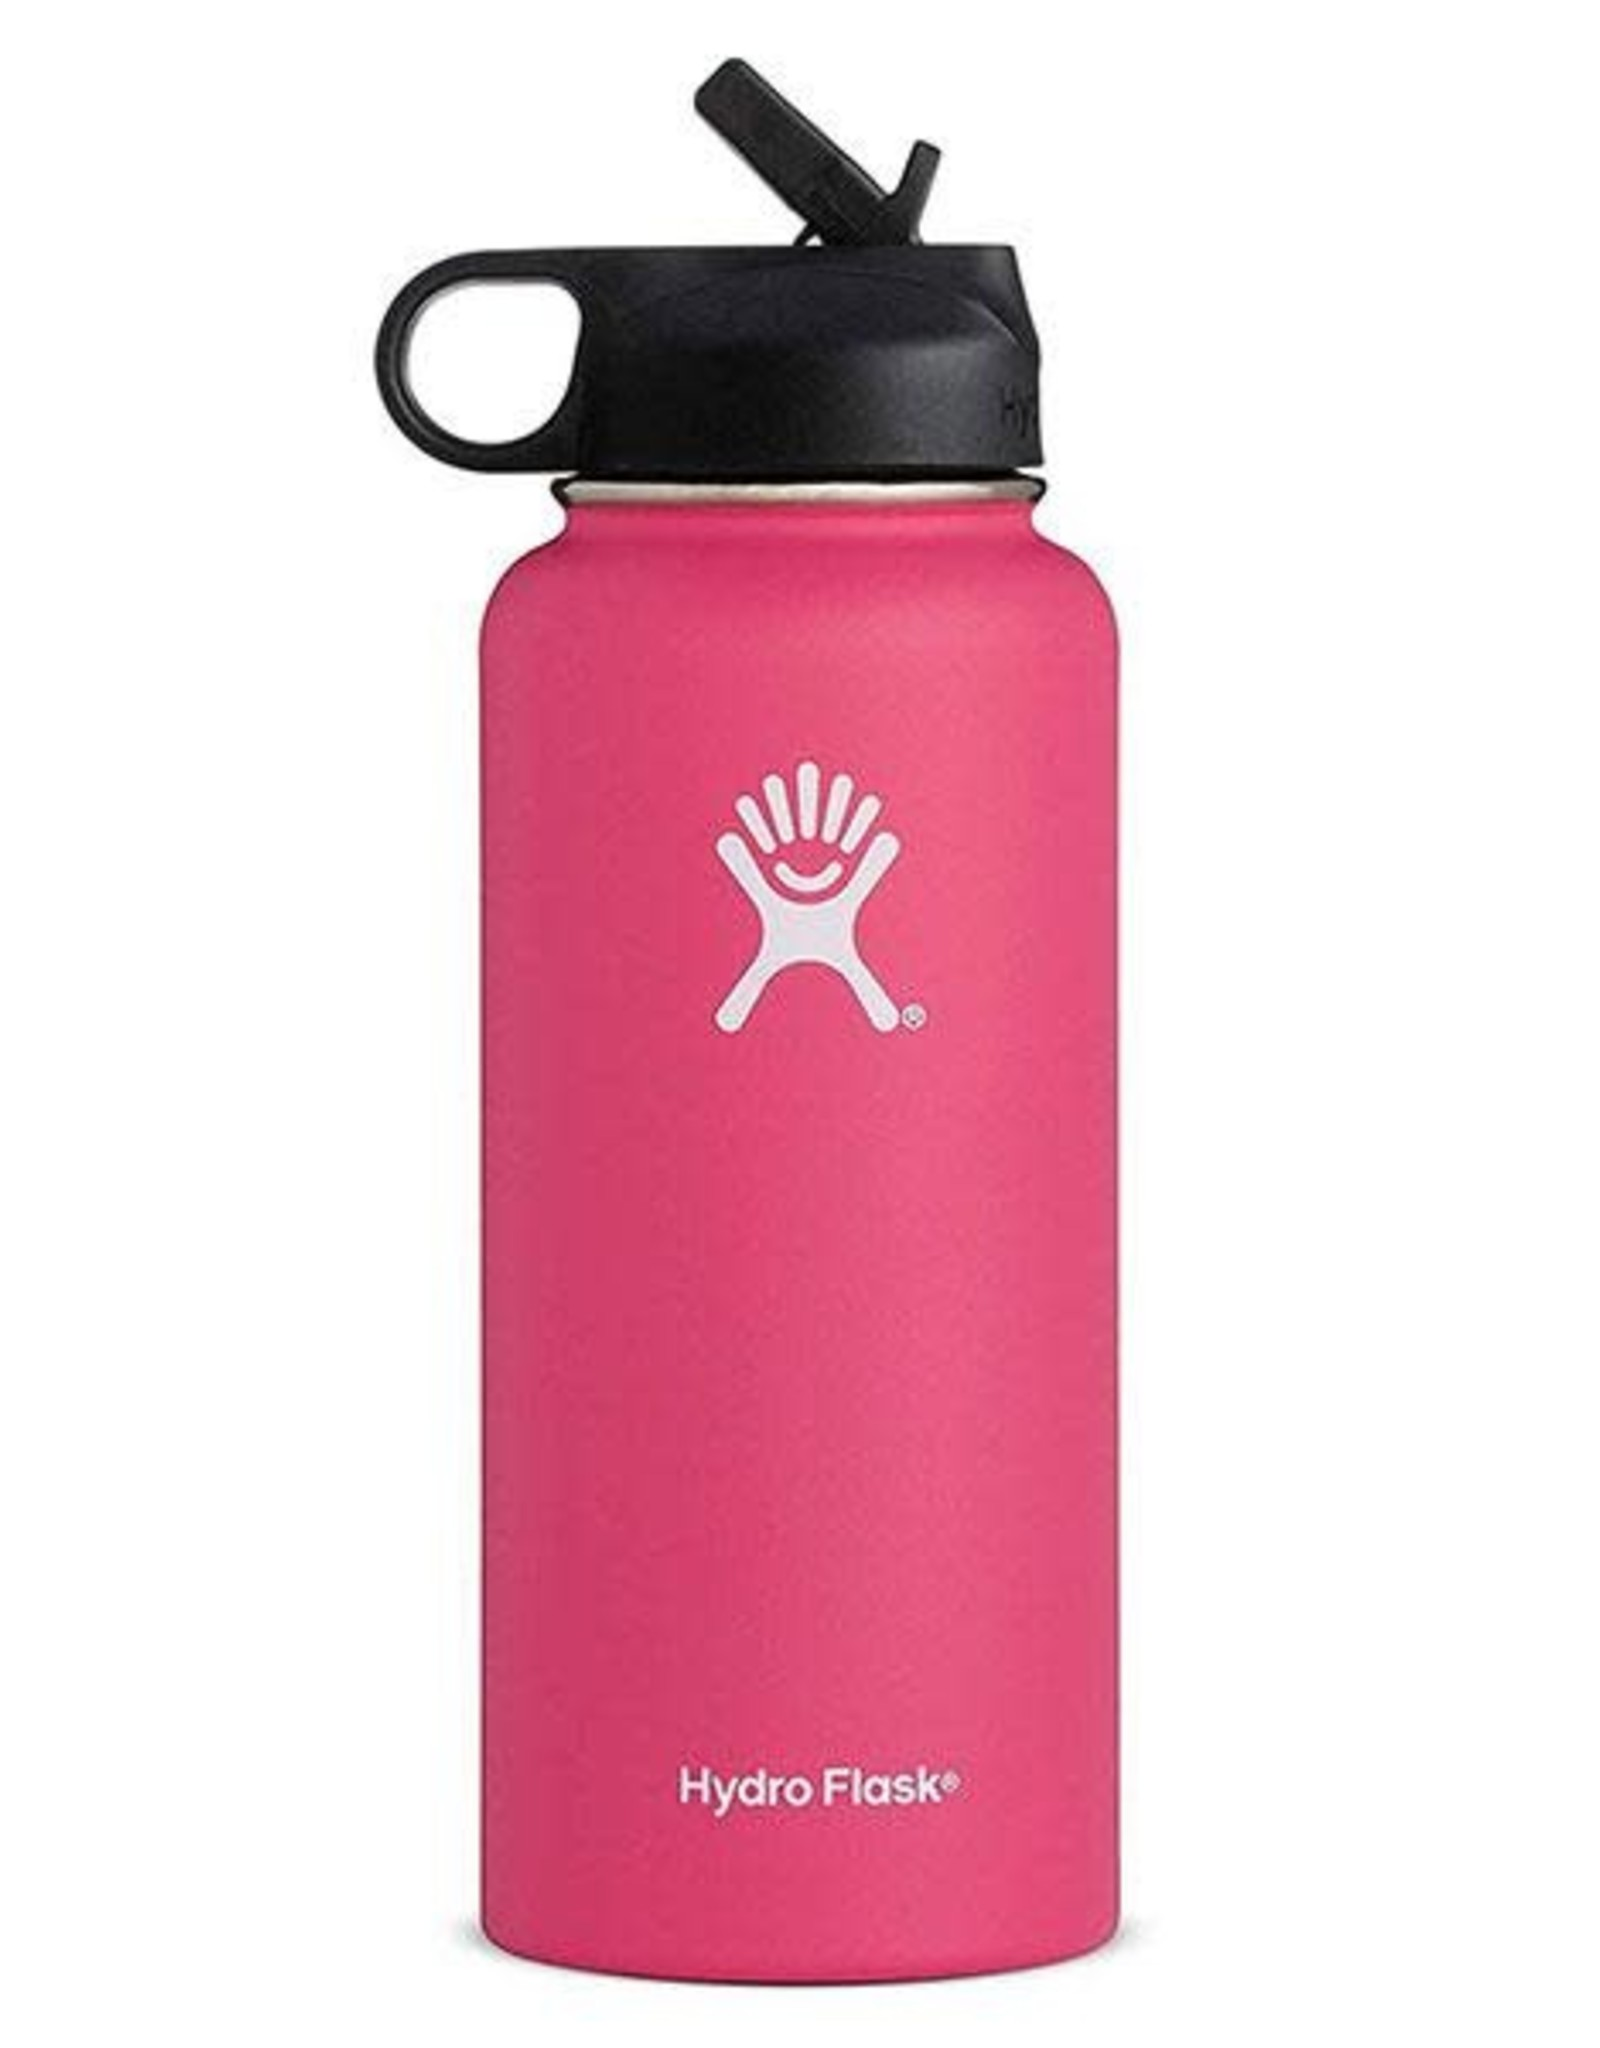 Hydro Flask Hydro Flask Wide Mouth With Straw Lid